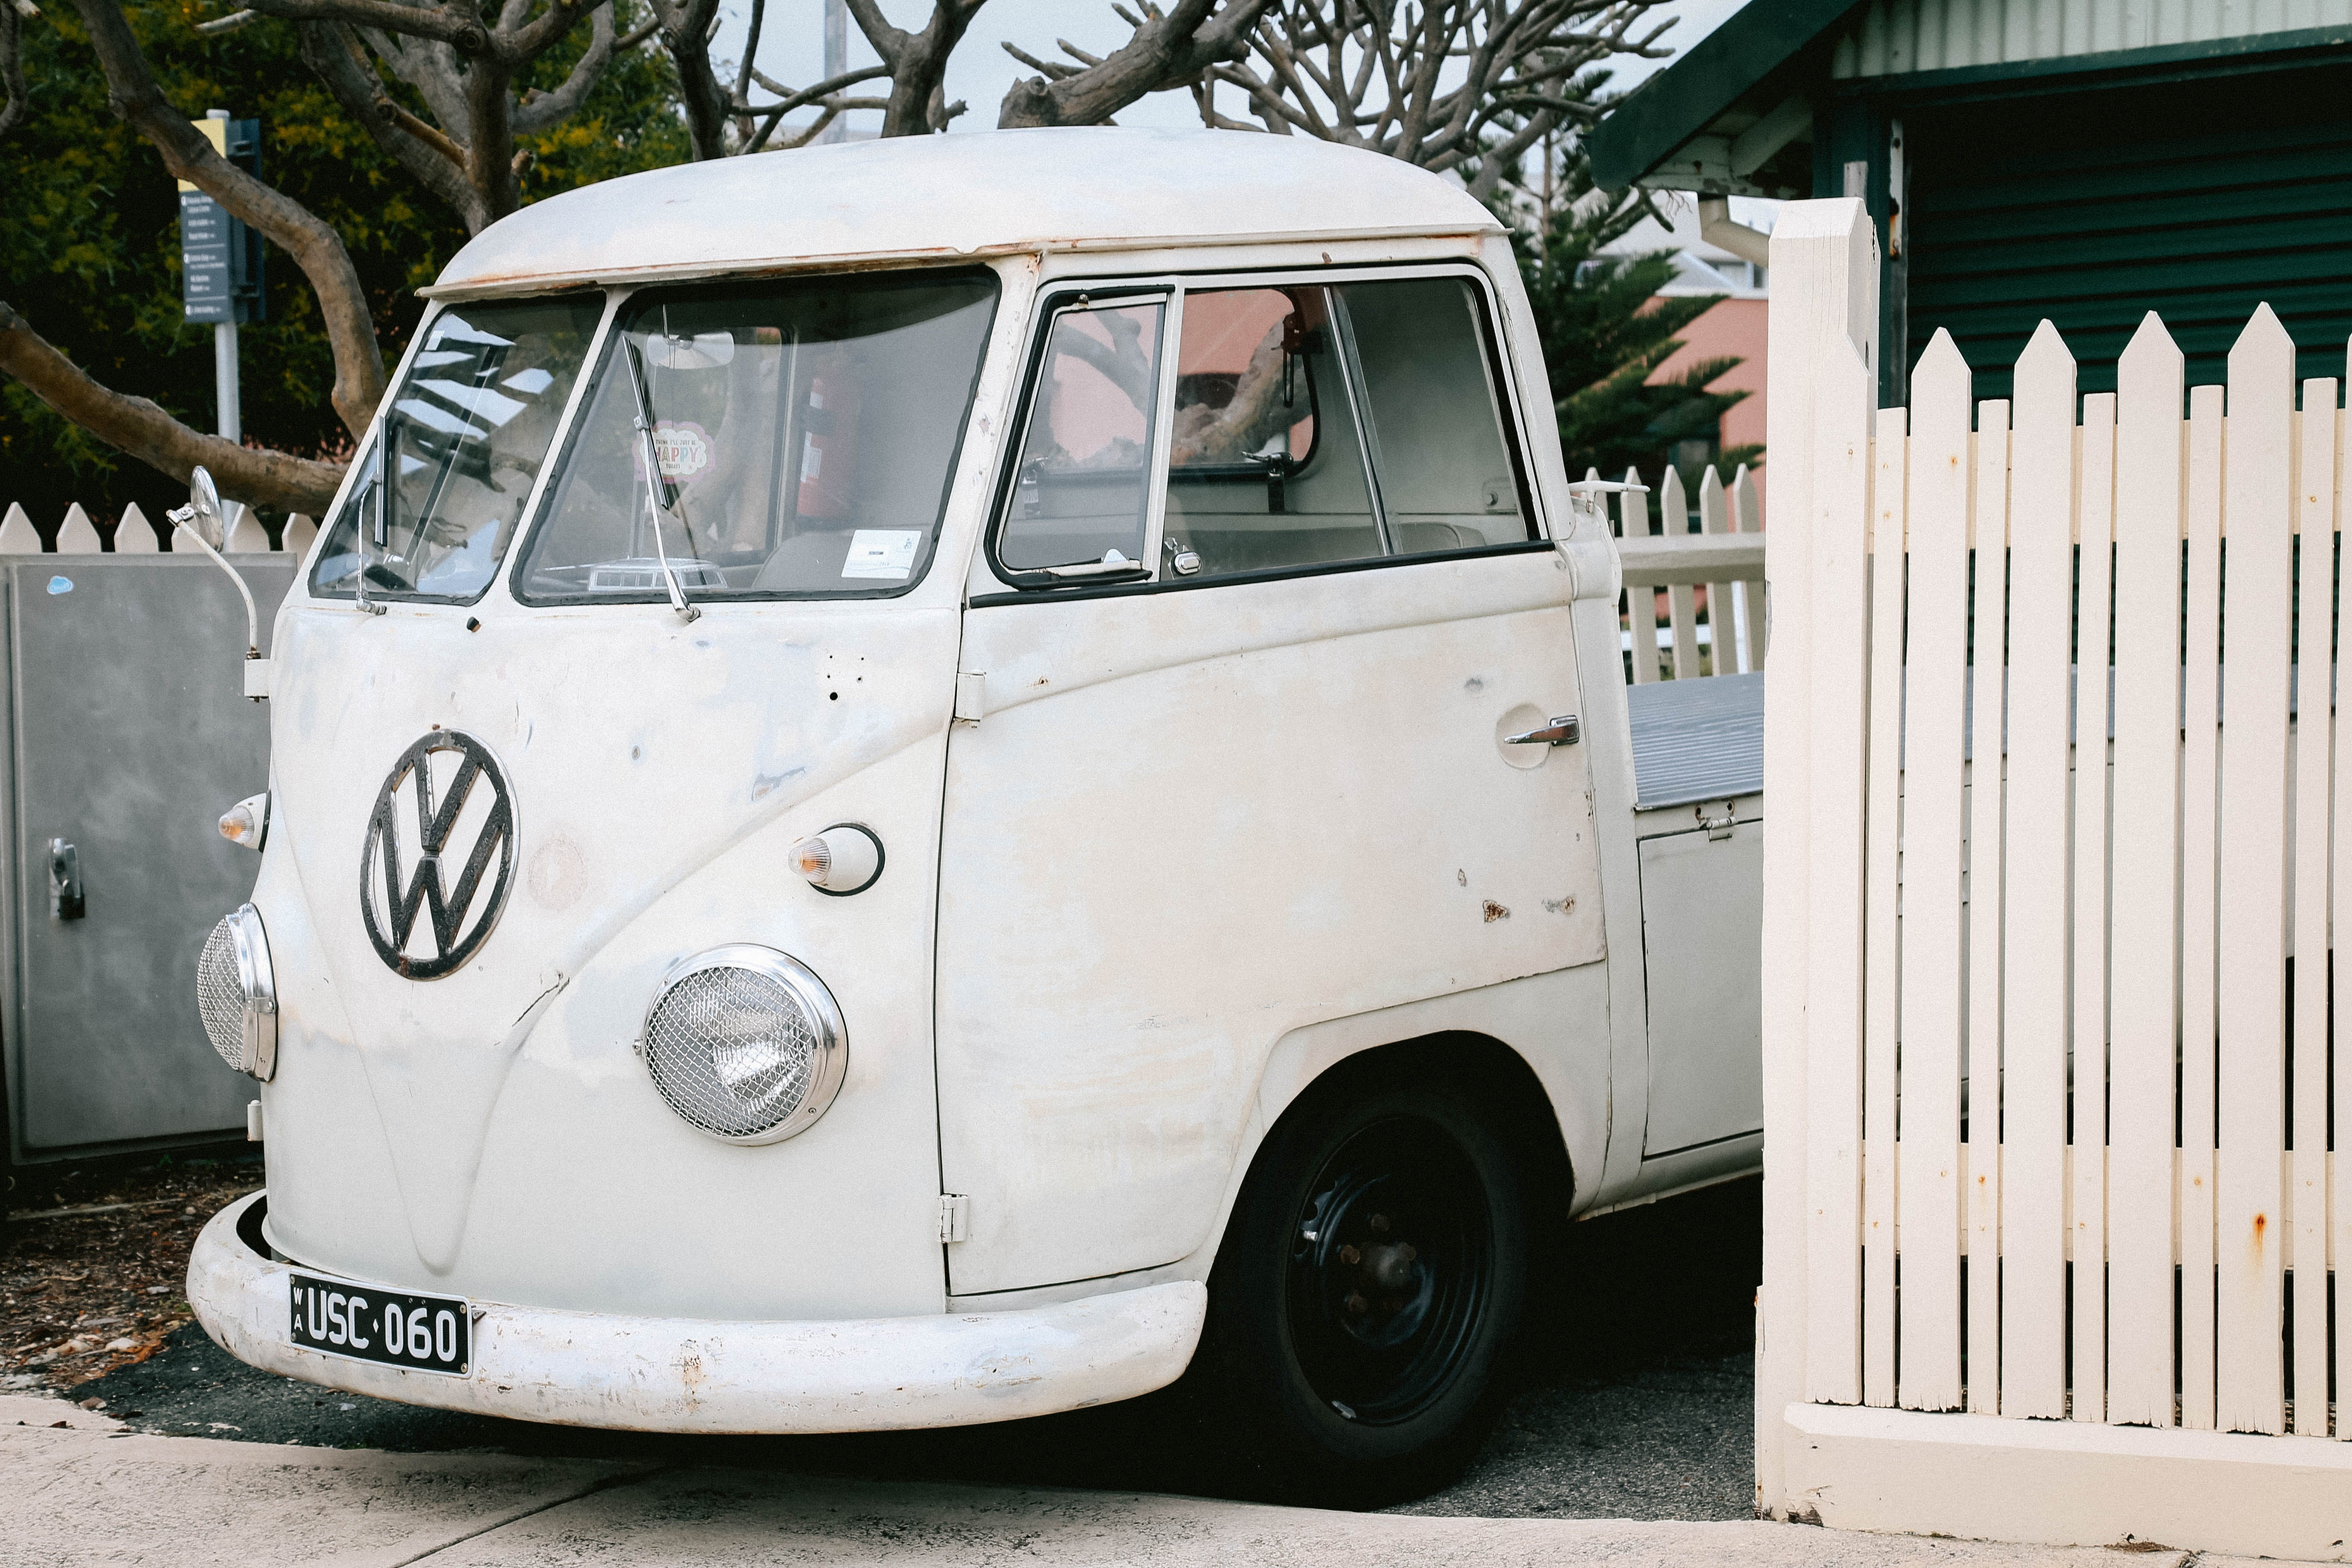 White Volkswagen Vehicle on Parking Lot Near White Wooden Picket Fence